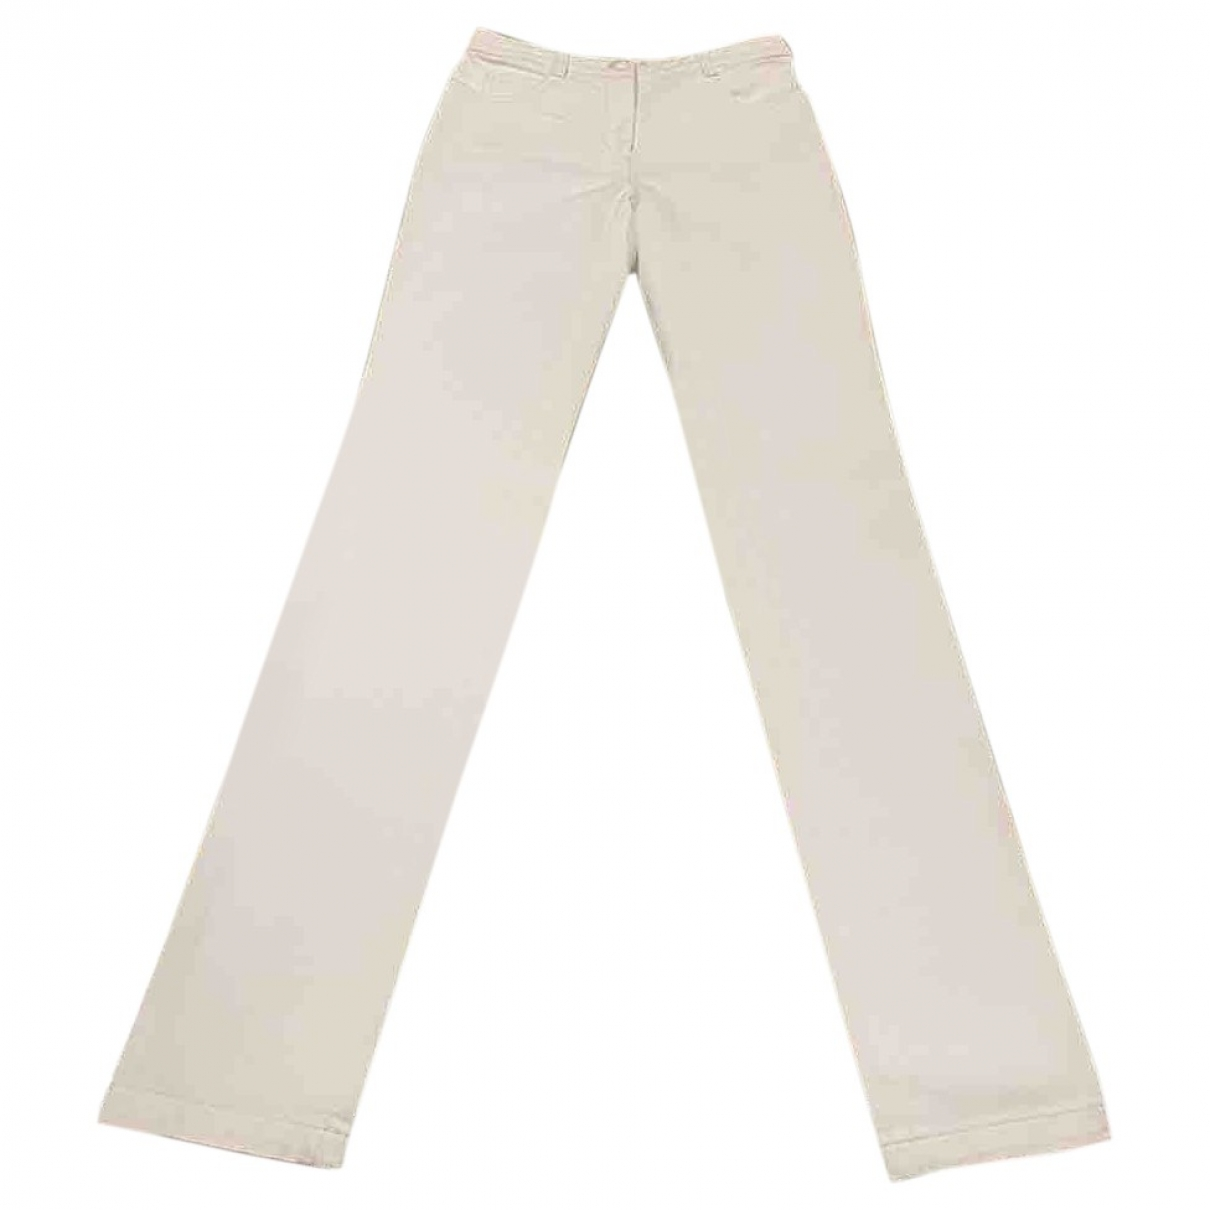 Chanel \N White Cotton Jeans for Women 34 FR